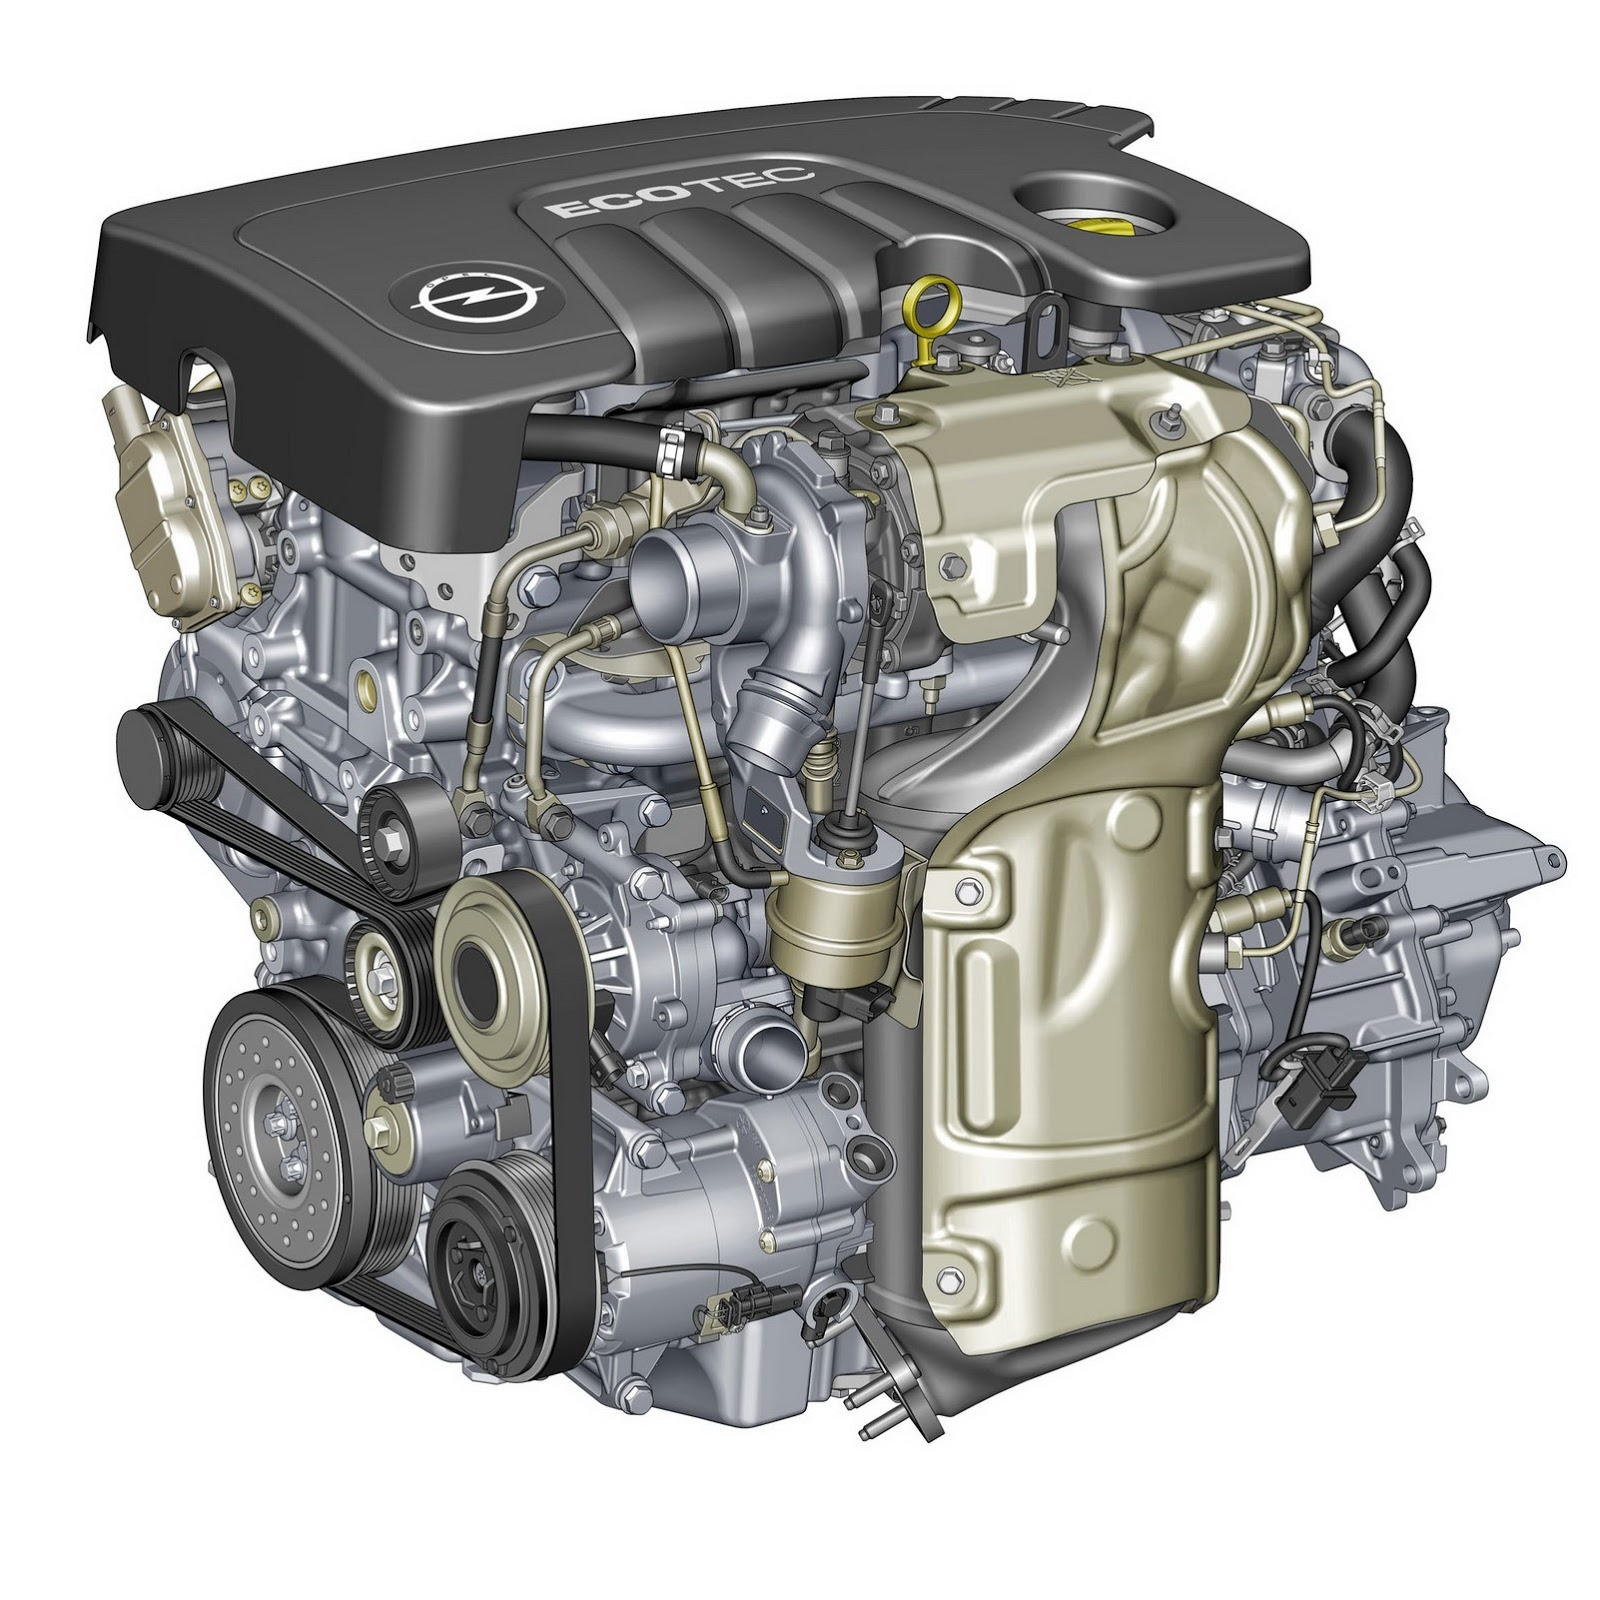 Opel-Vauxhall Zafira New Diesel Engine - 3